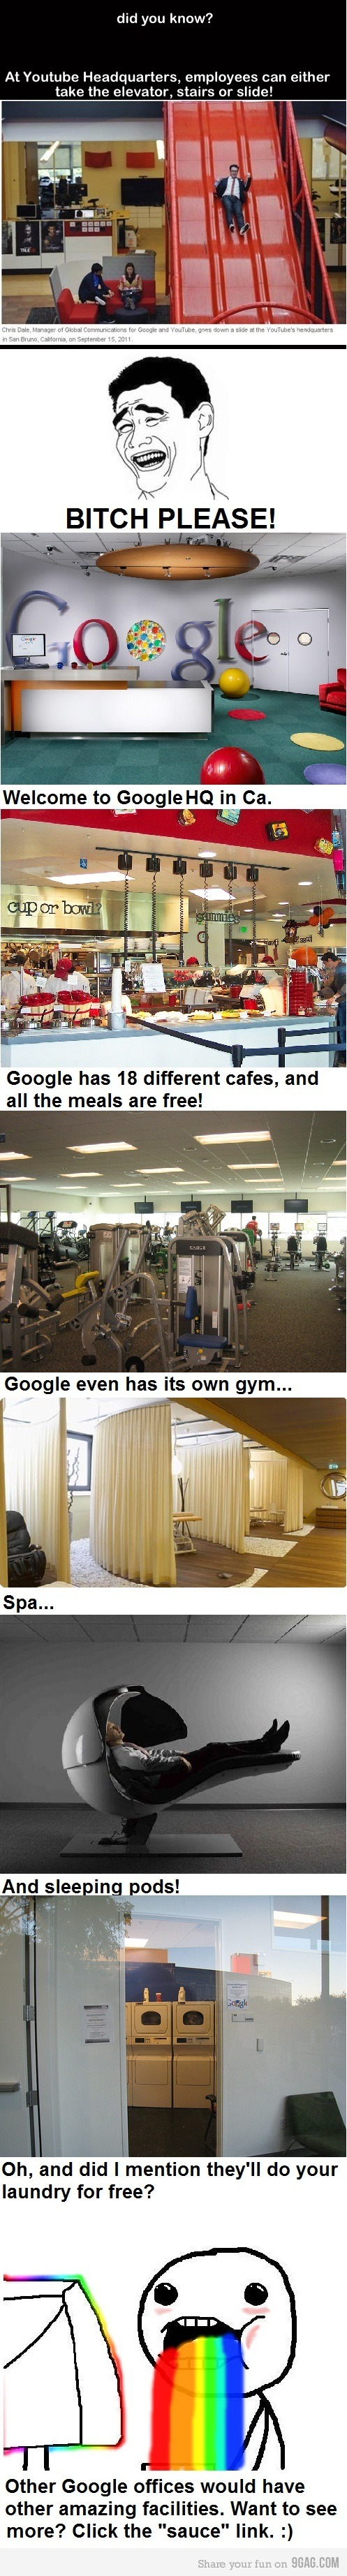 Inside the Google HQ